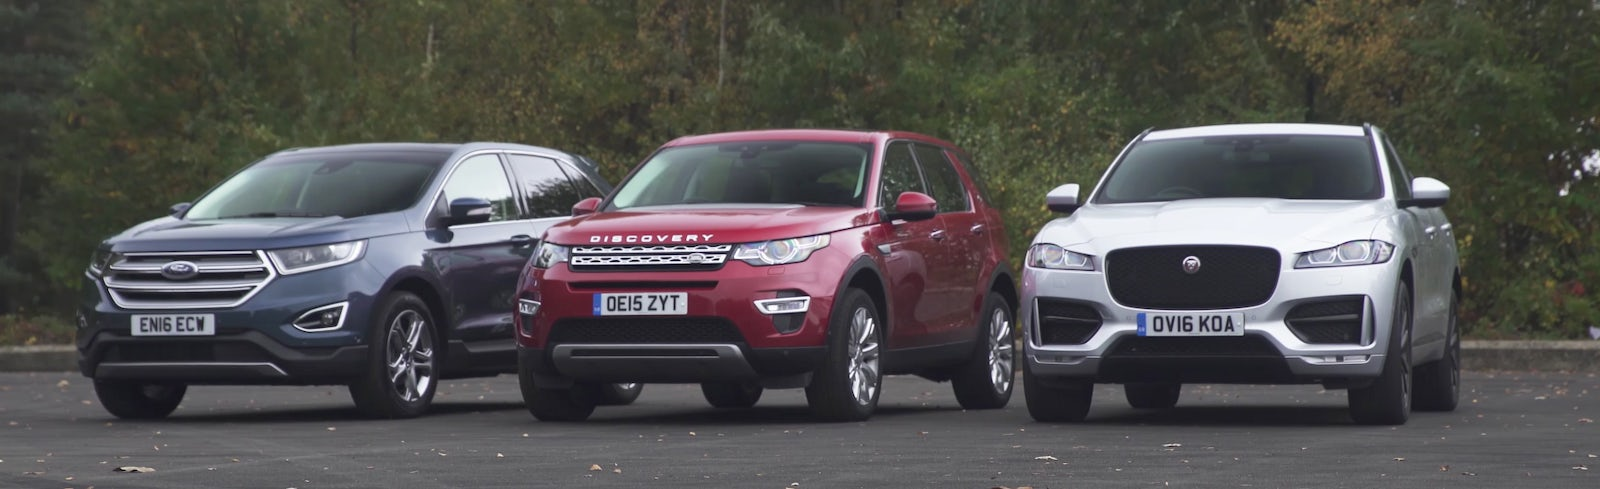 Which is best jaguar f pace land rover discovery sport ford edge all models come with leather upholstery with heated front seats a range of driver aids climate control bluetooth connectivity and dab digital radio publicscrutiny Gallery